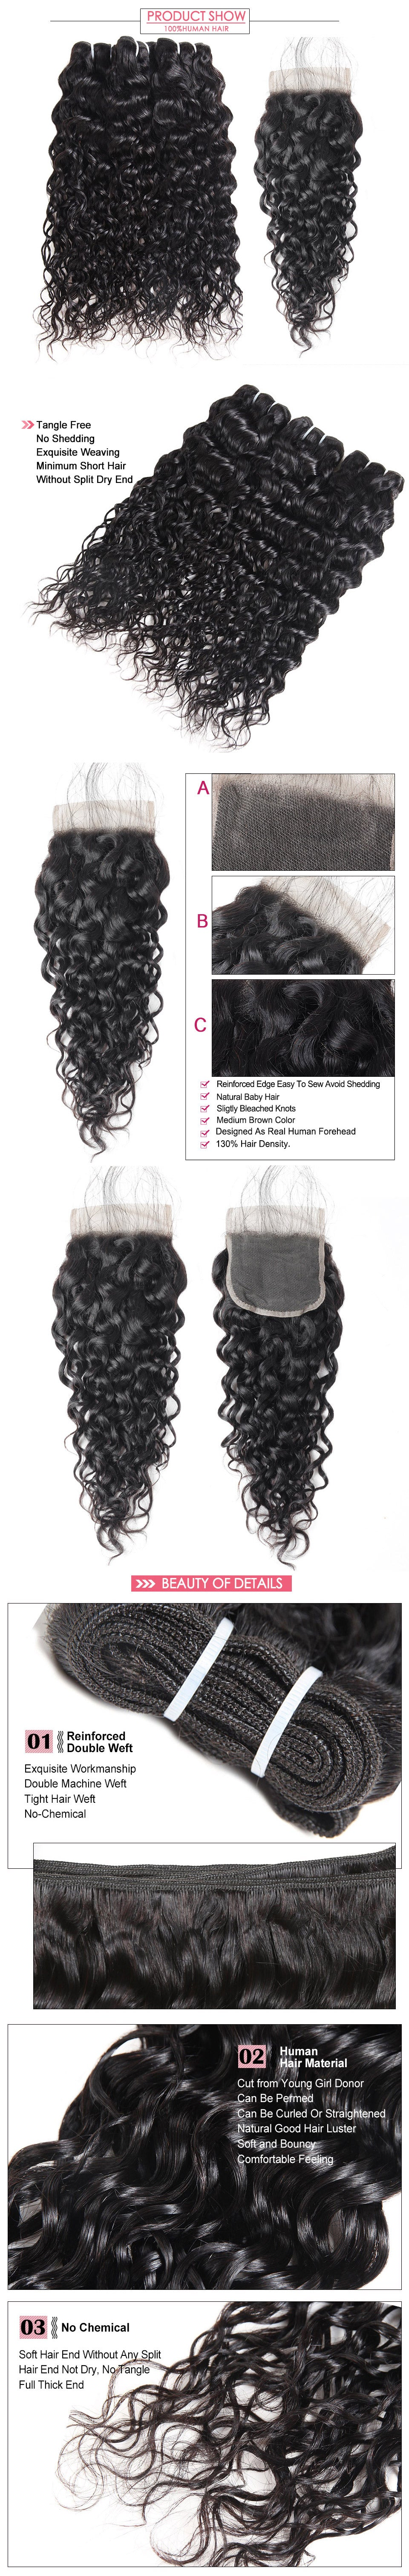 Water Wave Hair 3 Bundles with Lace Closure